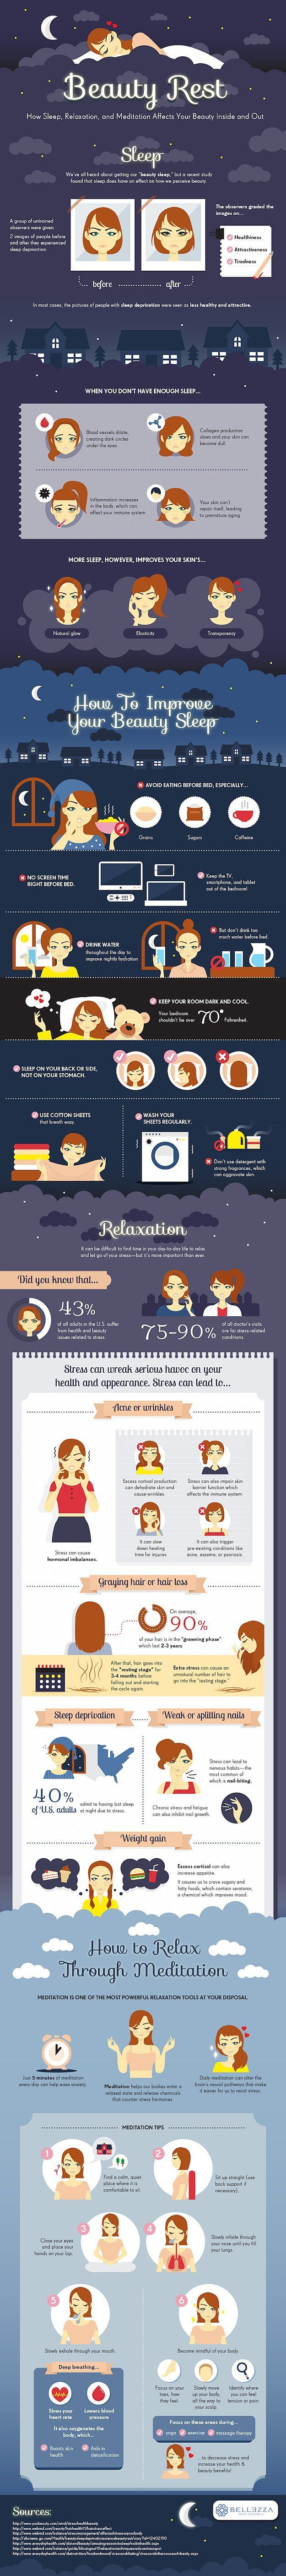 Tips to Improve Your Beauty Sleep, check it out at makeuptutorials.c......